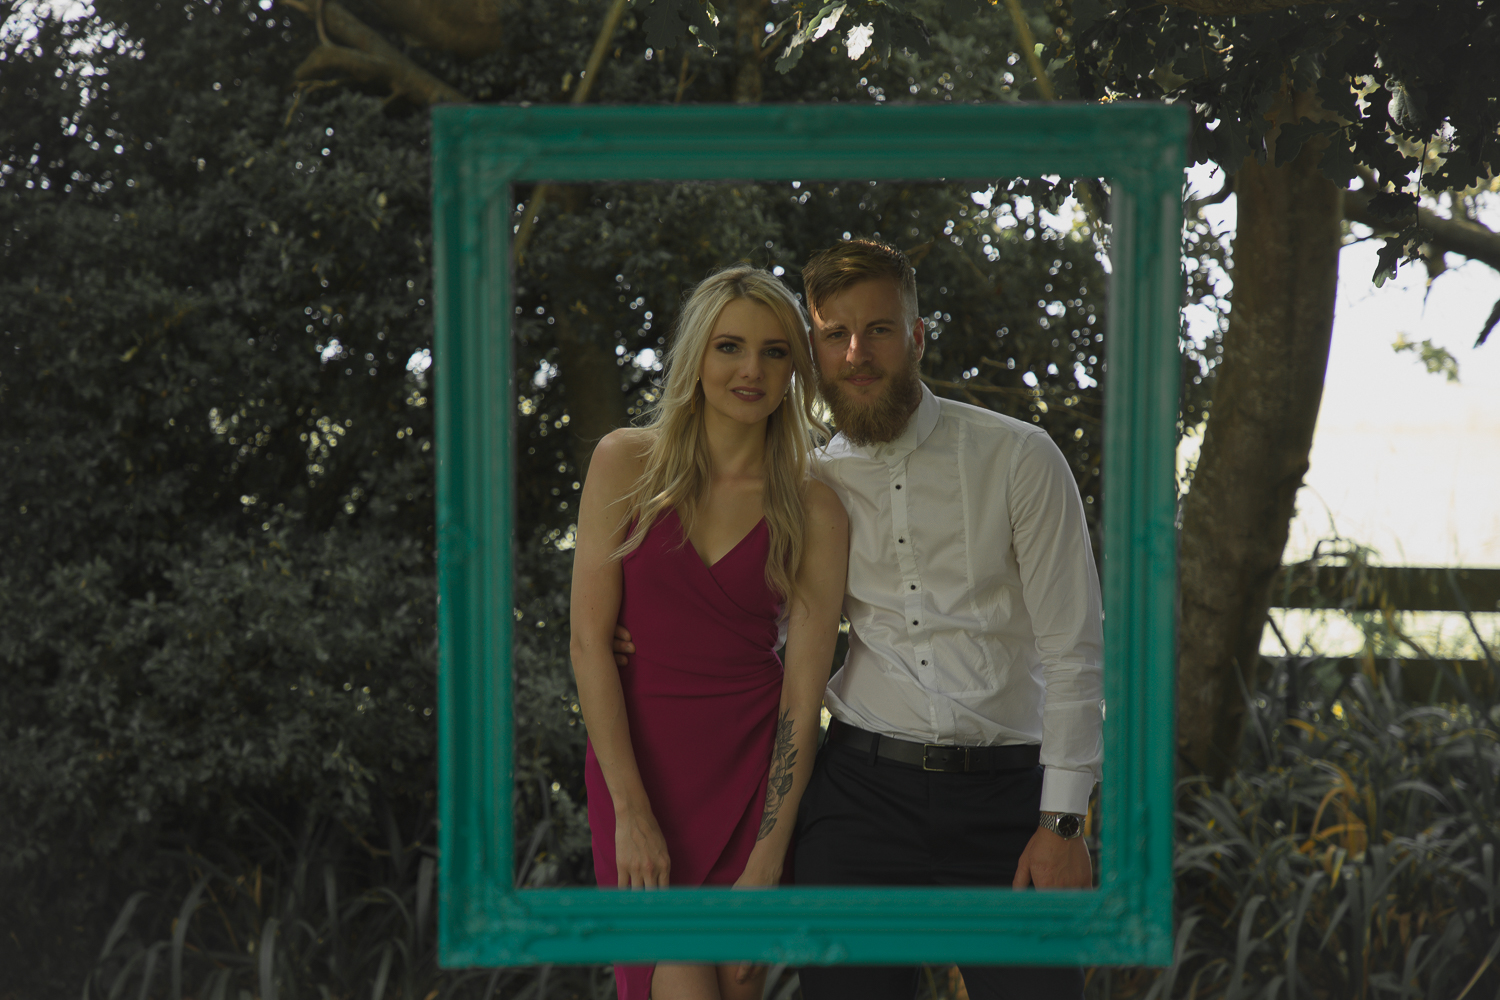 wedding-photography-guests-having-photo-in-hanging-frame.jpg